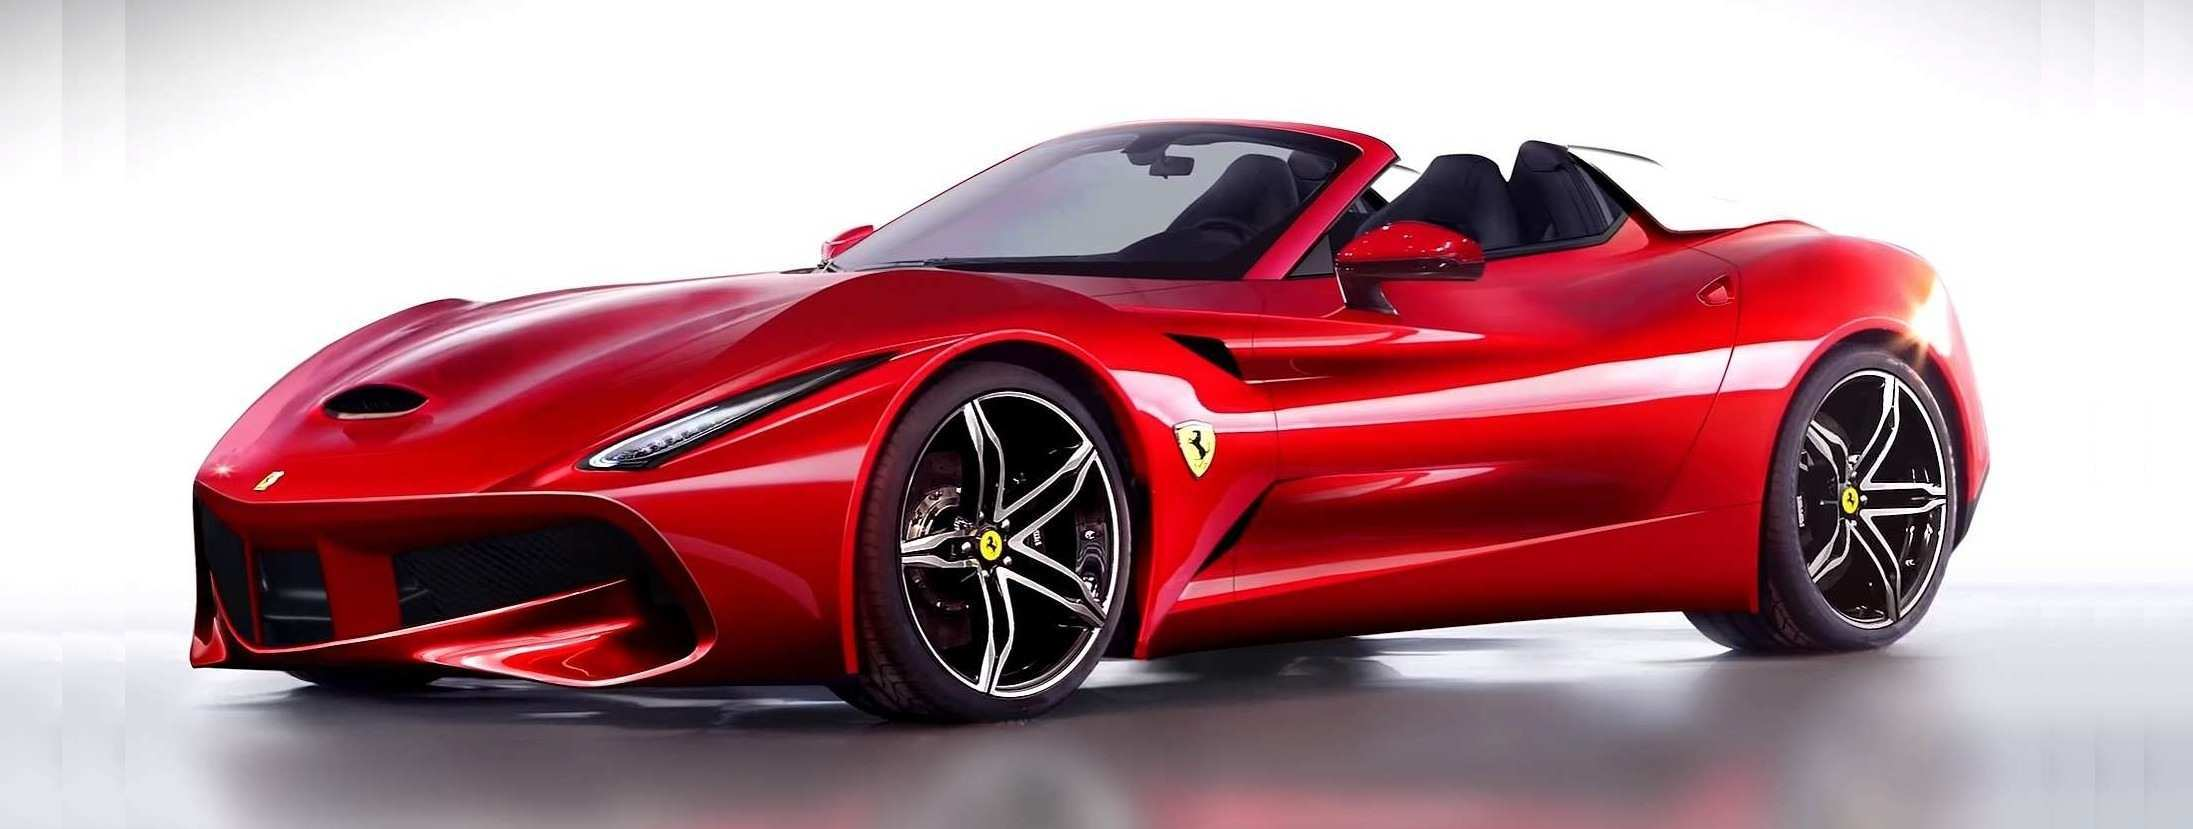 25 All New The Moto Ferrari 2019 Specs And Review Speed Test by The Moto Ferrari 2019 Specs And Review